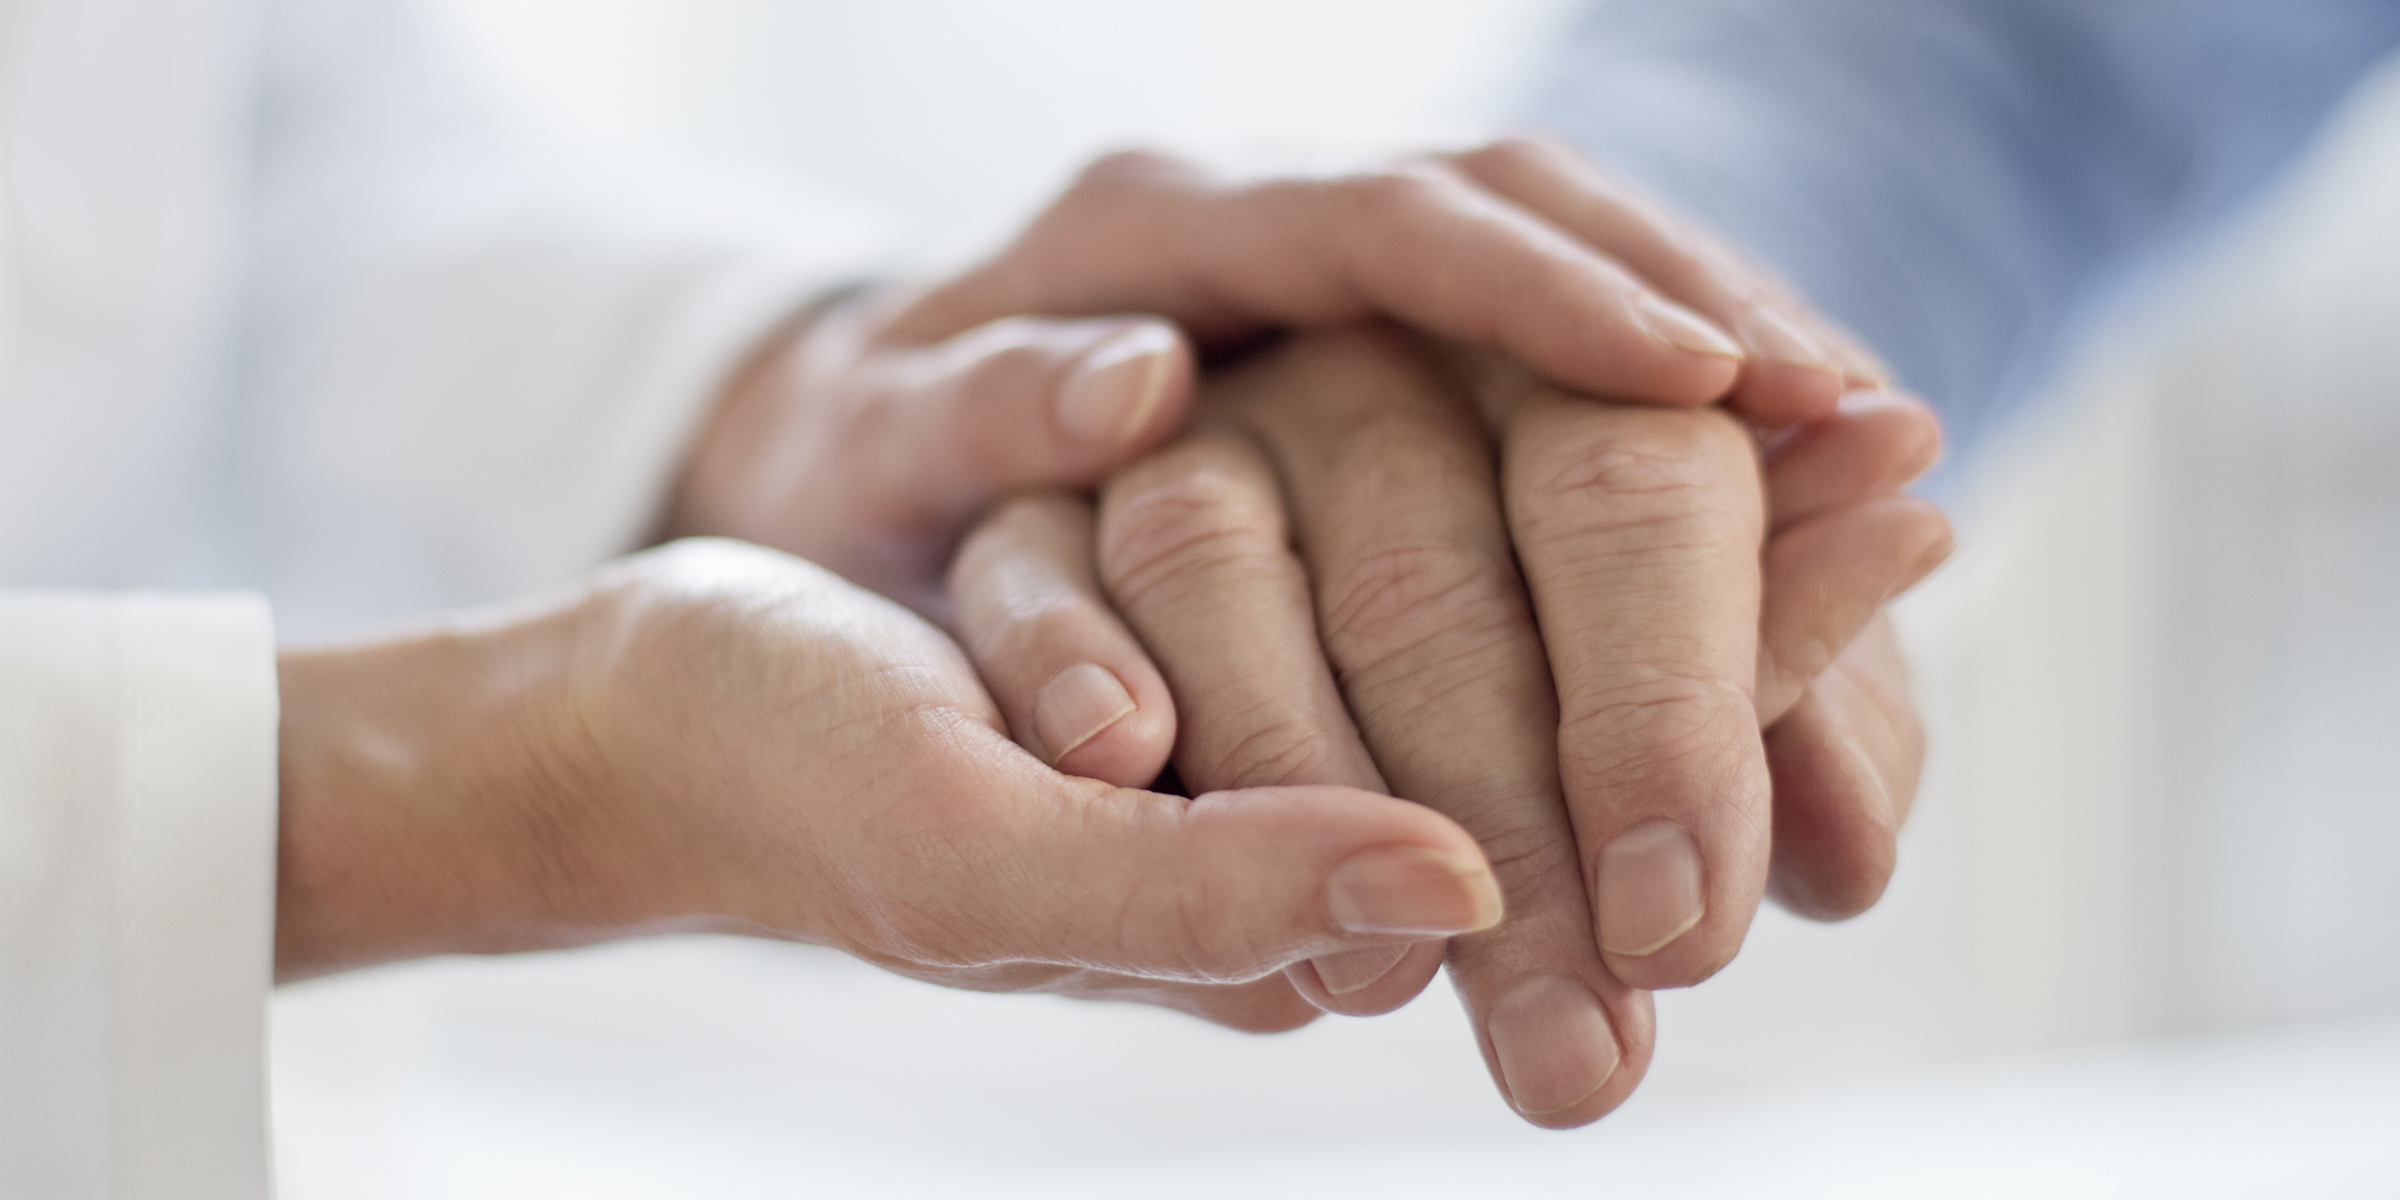 What it's like to be a caregiver and how to get support